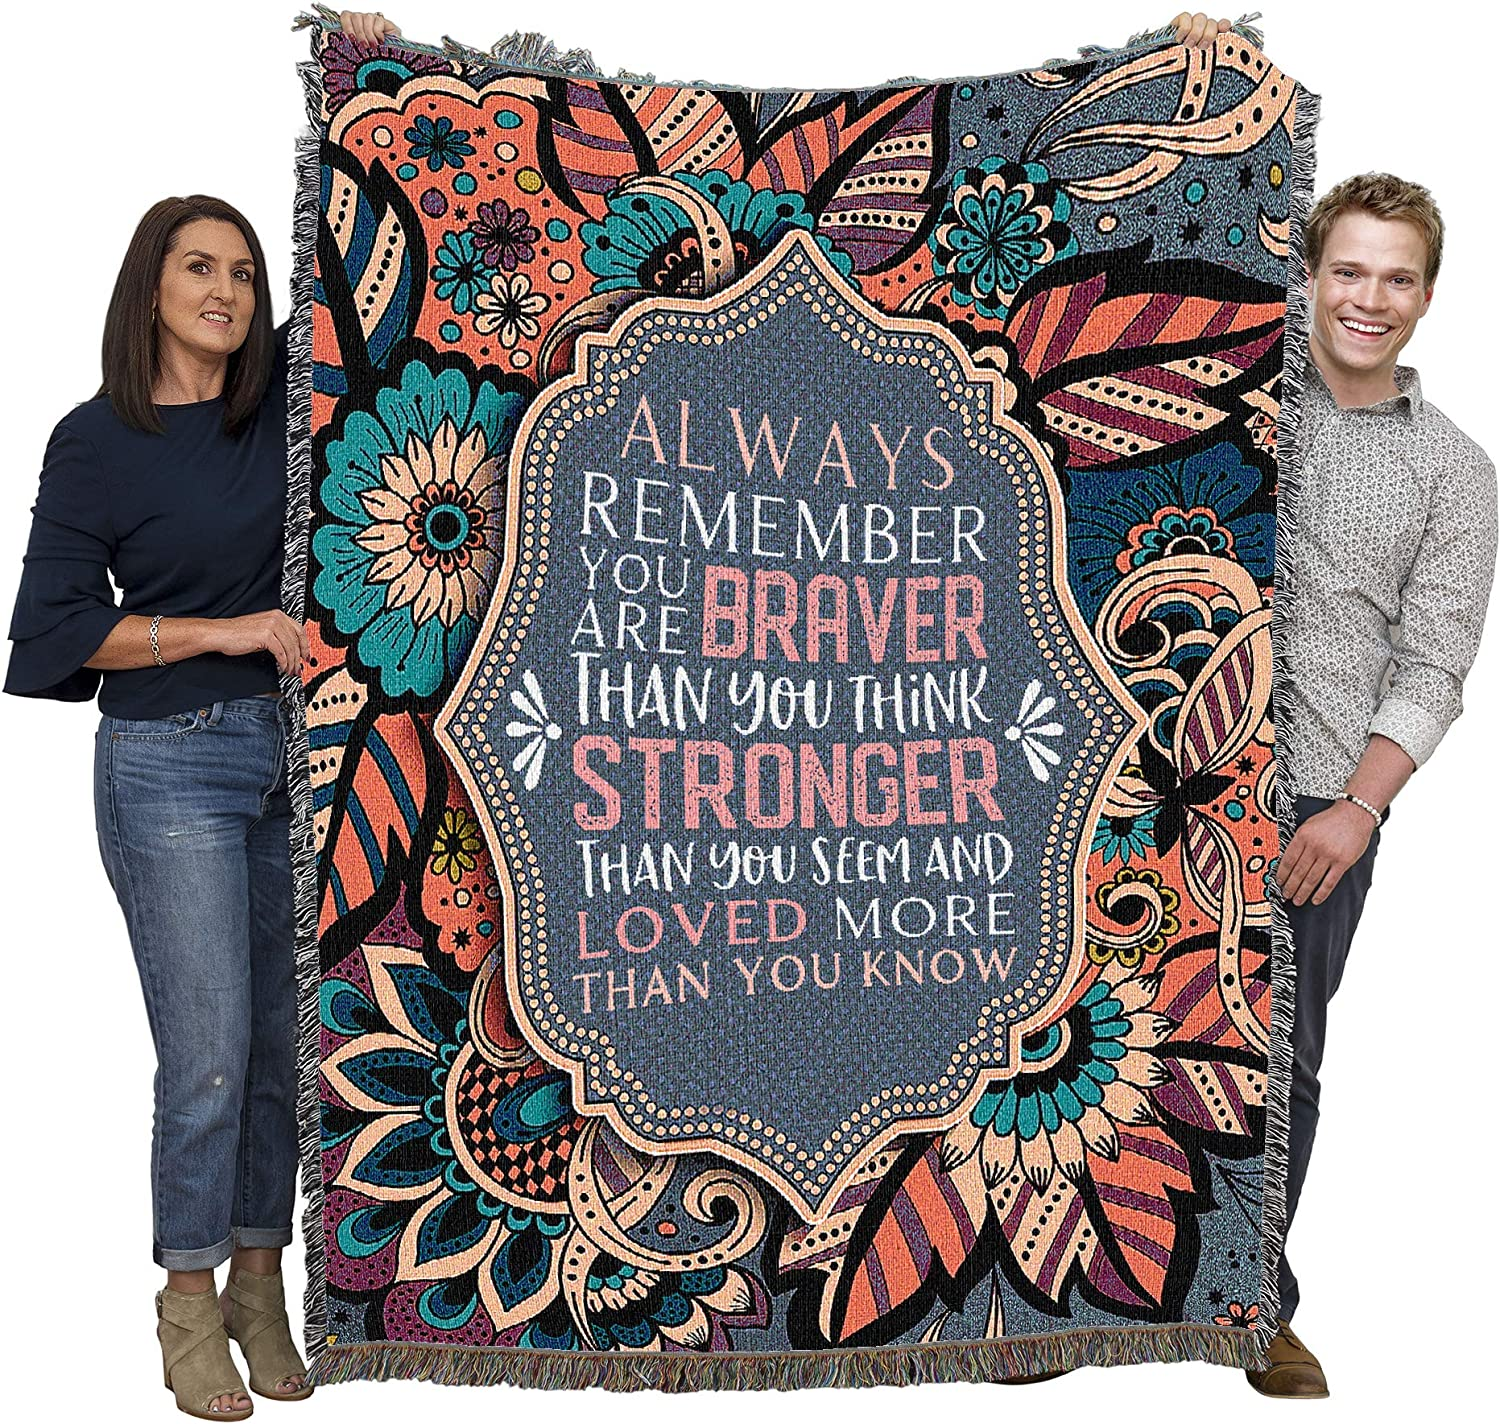 Always Remember You are Braver Than You Think - Cotton Woven Blanket Throw - Made in The USA (72x54)